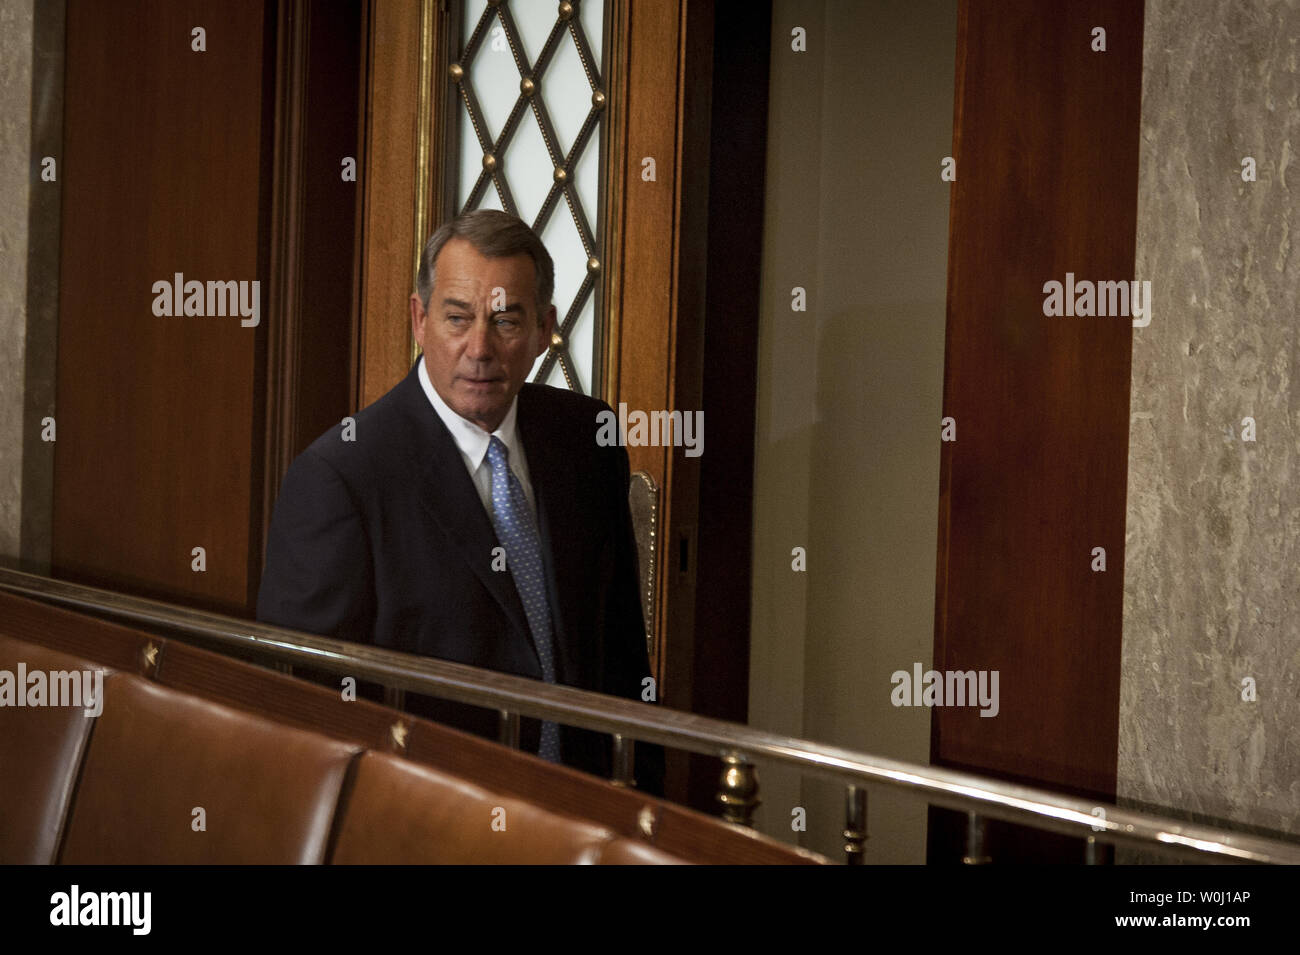 The day before he is to retire from Congress, Speaker of the House John Boehner (R-OH) looks over the House of Representatives as he leaves during a quorum call on October 29, 2015 in Washington, D.C. Following Boehner's farewell address, the House of Representatives will vote on Boehner's replacement for Speaker. Photo by Pete Marovich/UPI - Stock Image